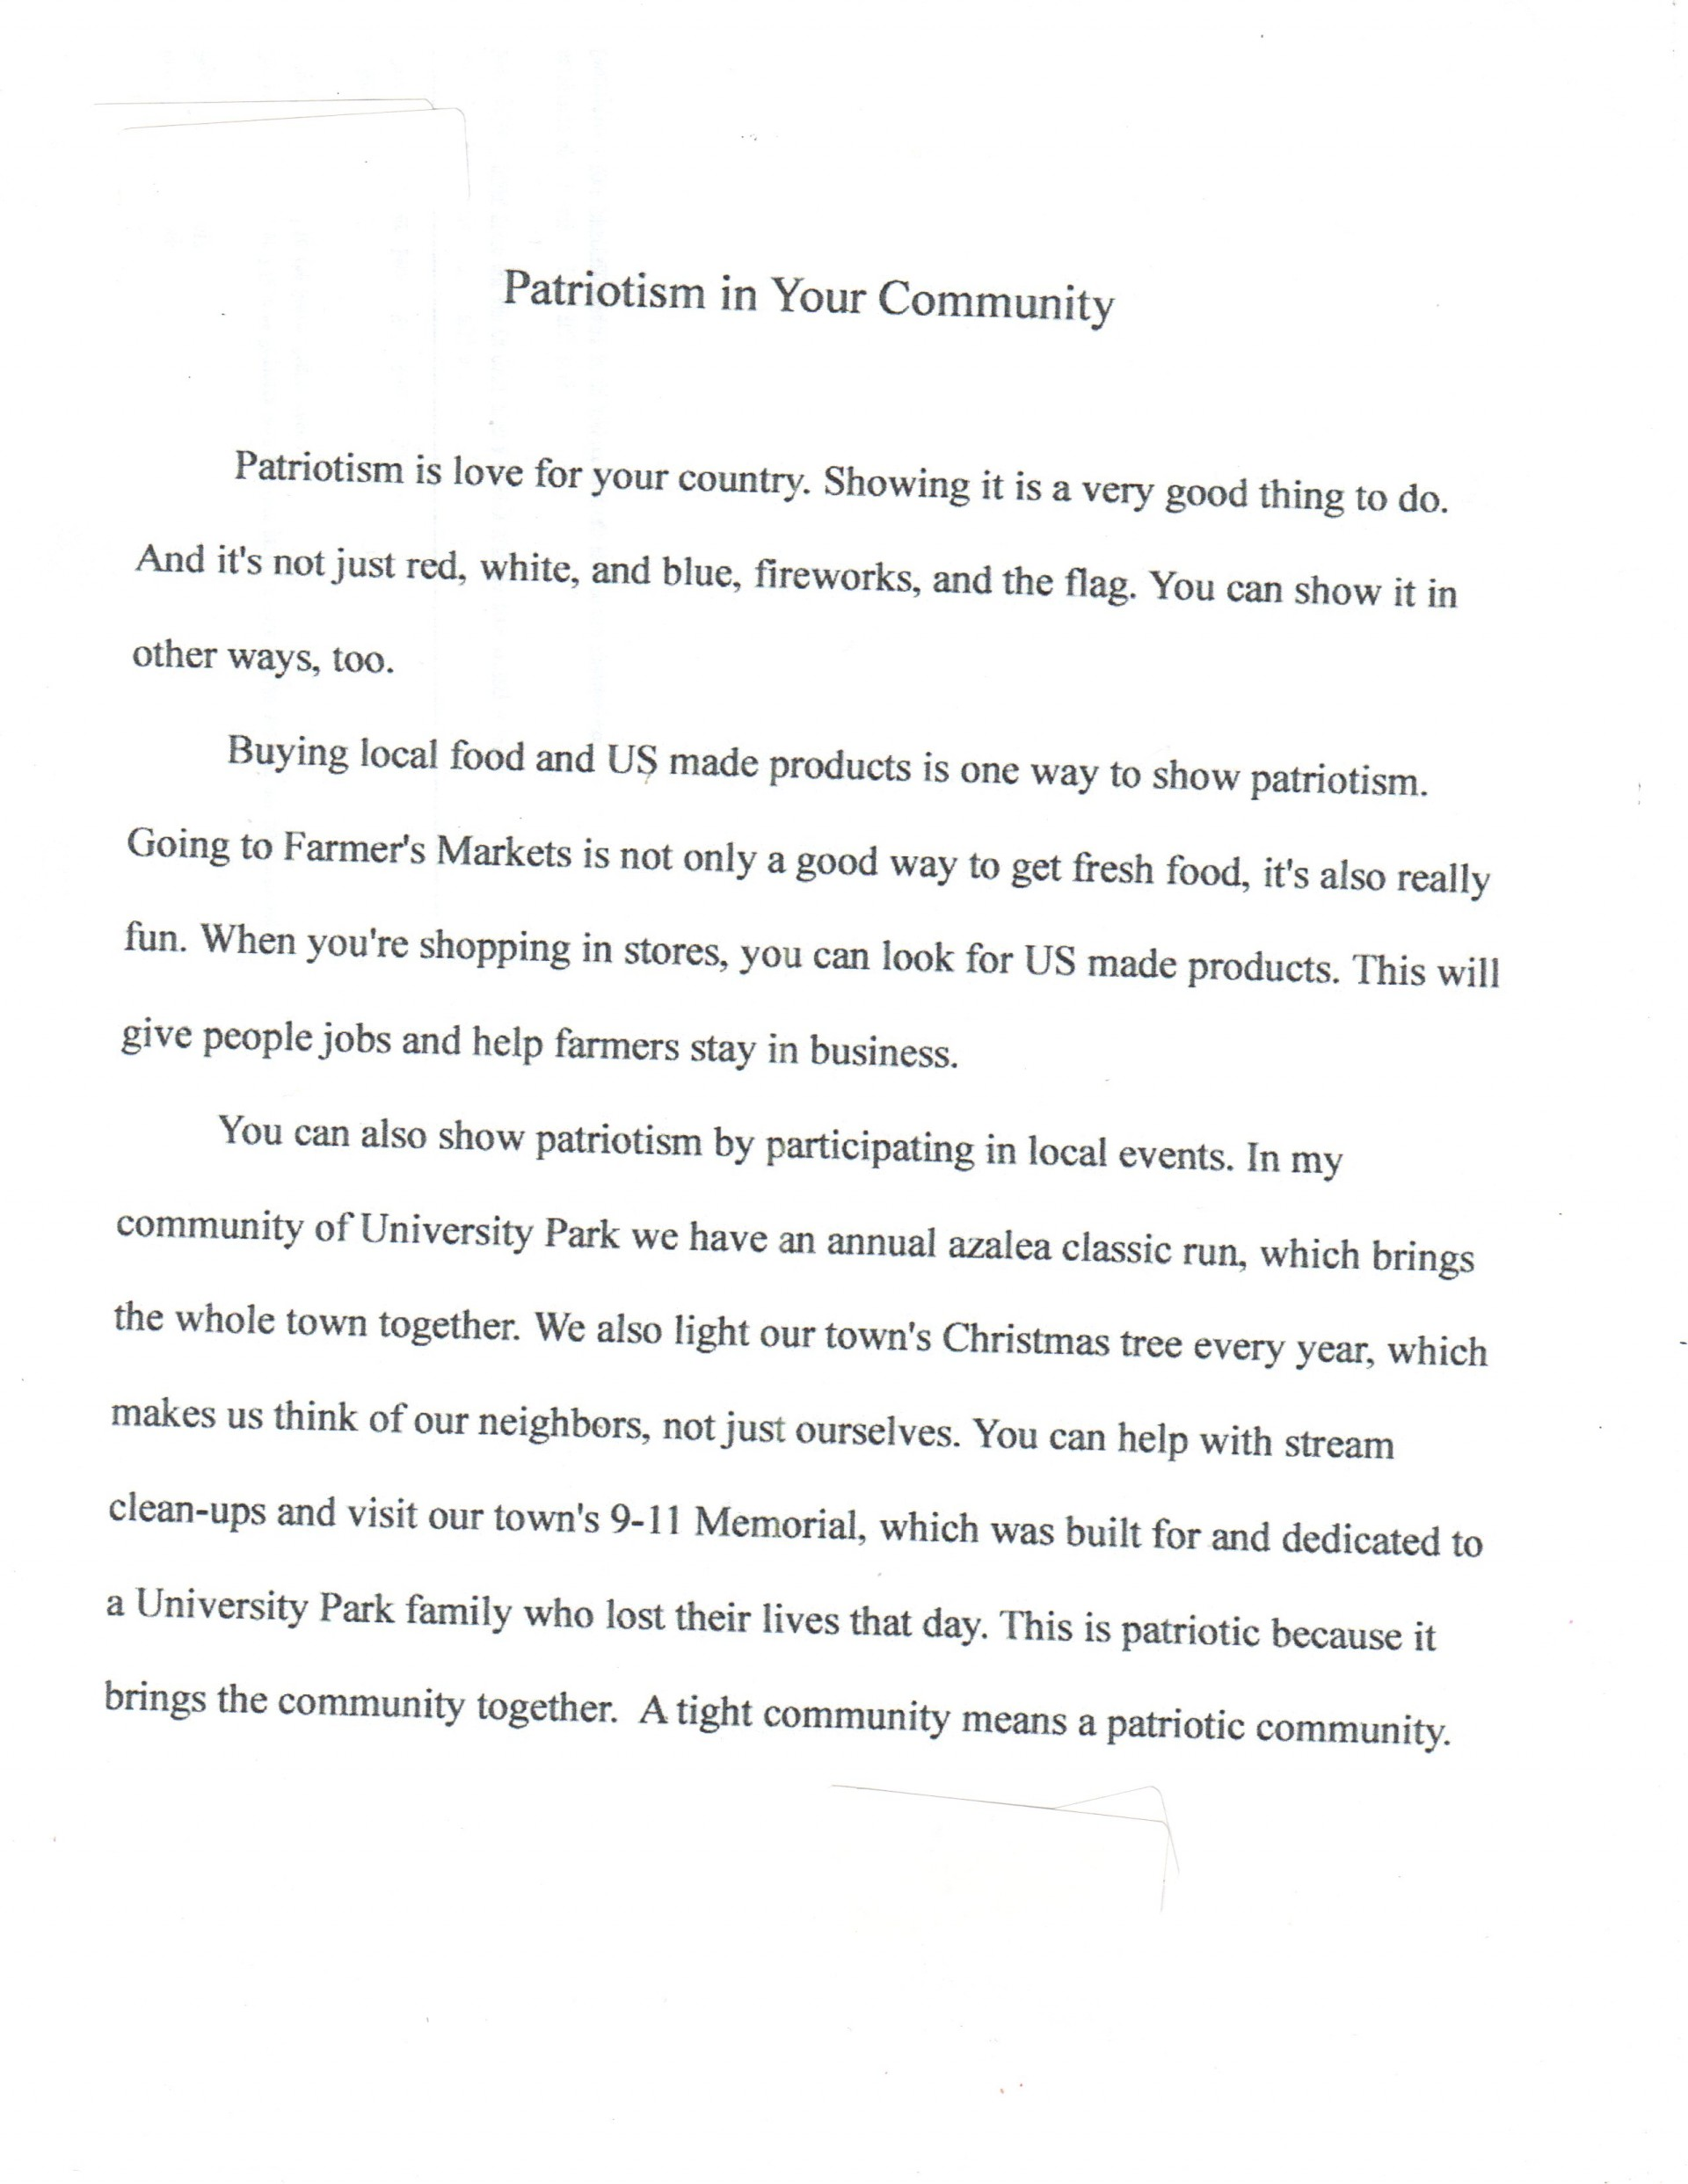 009 Americanism Essay Contest Example Astounding Amvets 2017 For Grades 7–12 Education Leaders 1920